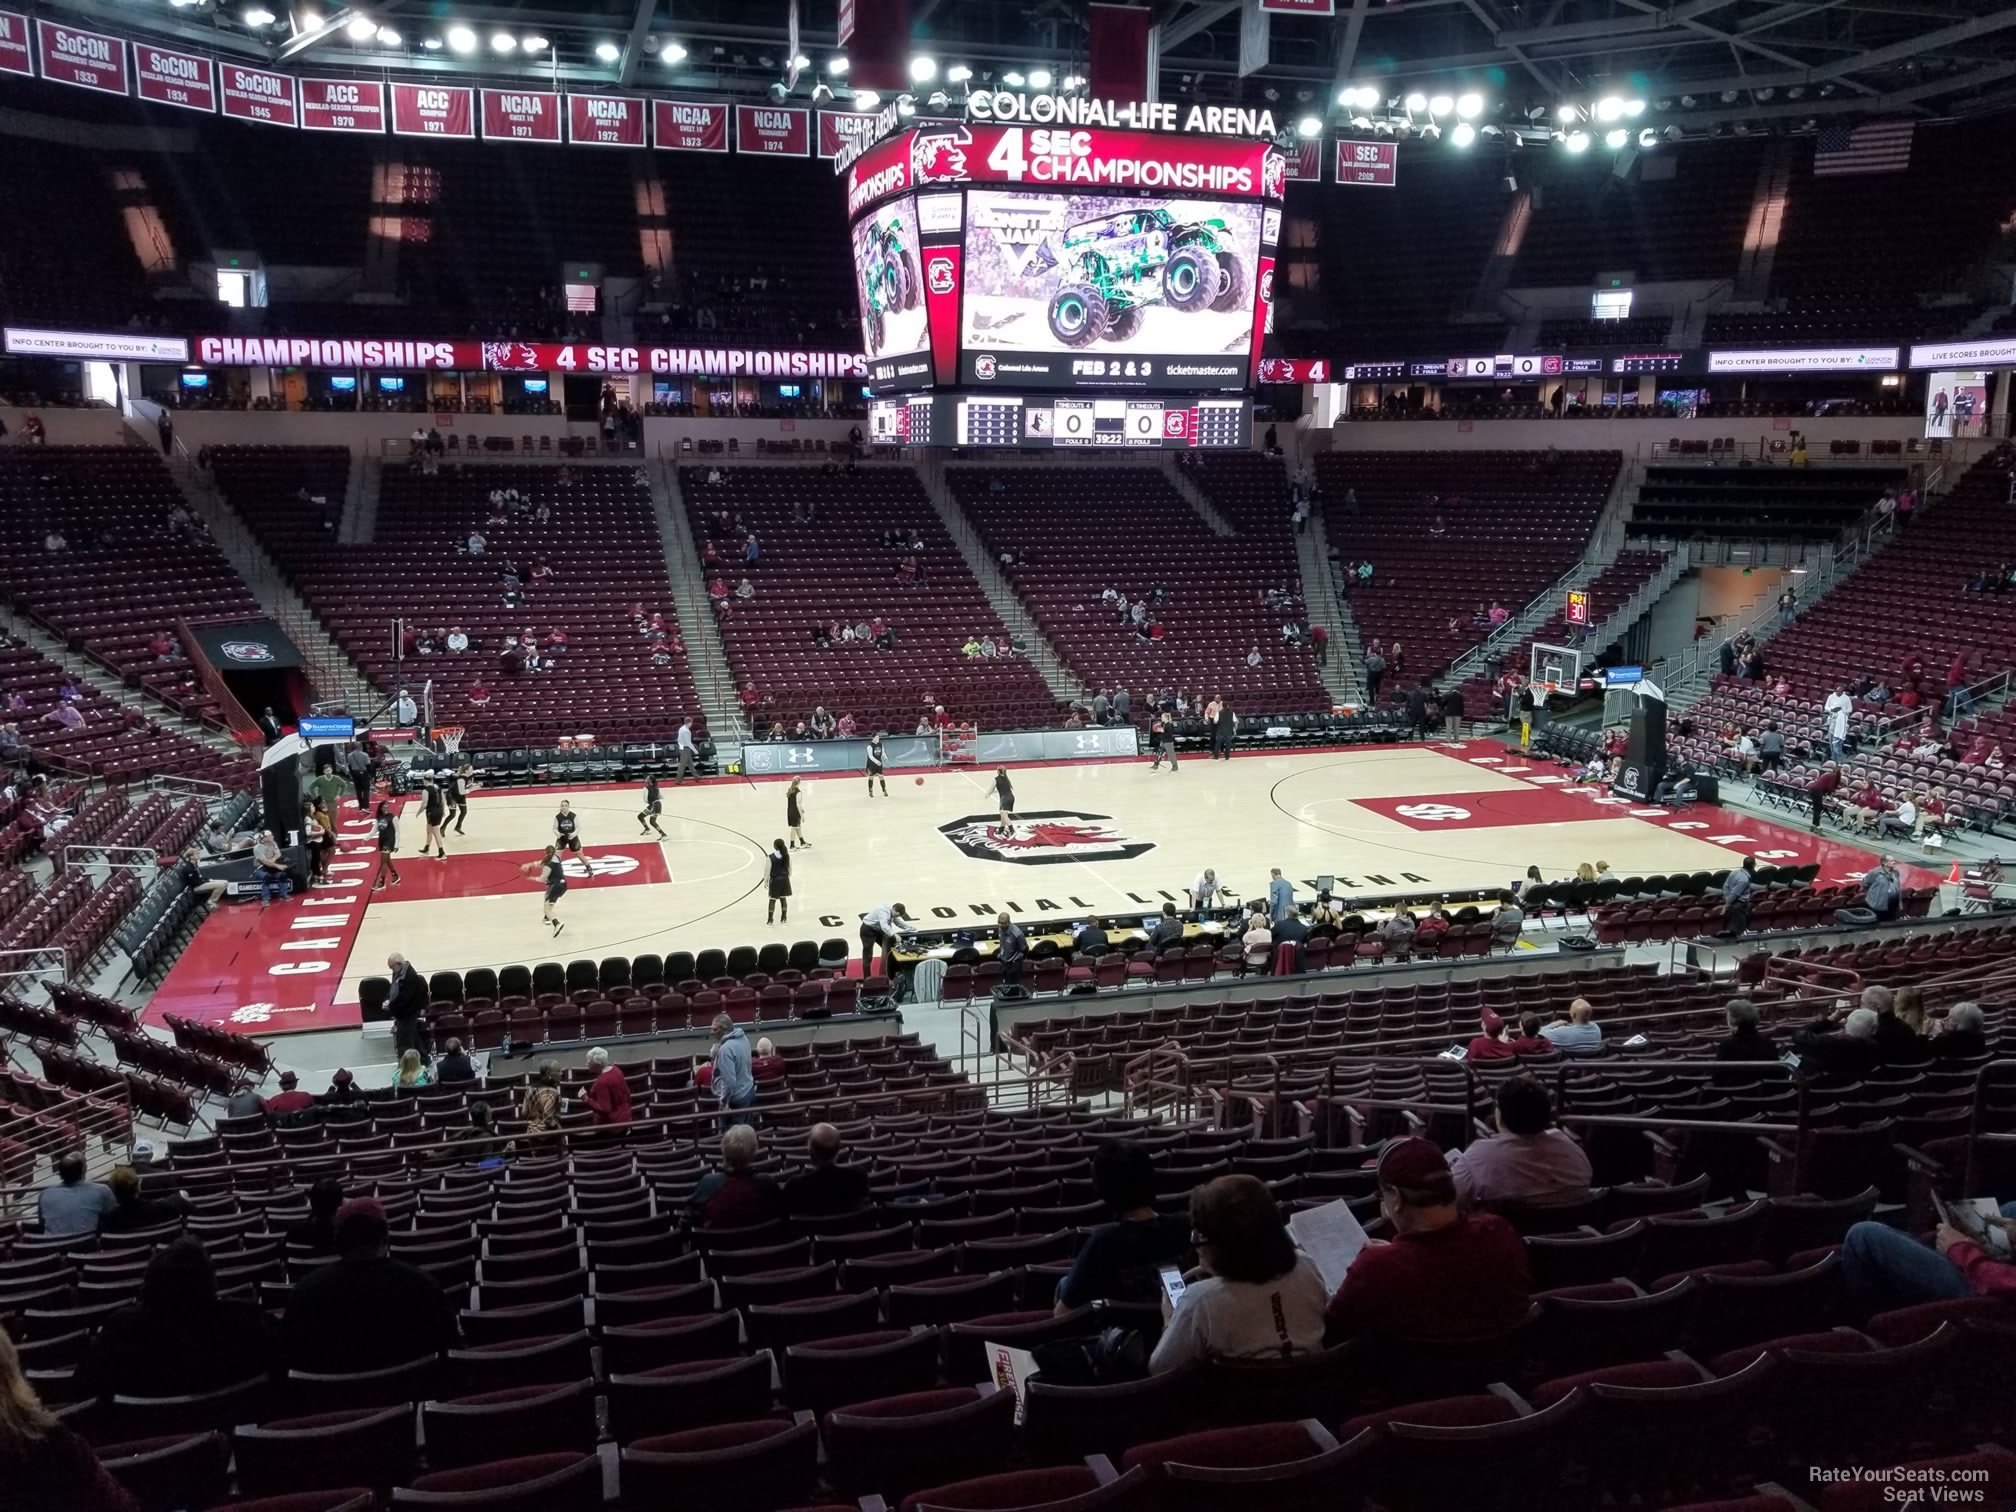 Seat View for Colonial Life Arena Section 115, Row 25